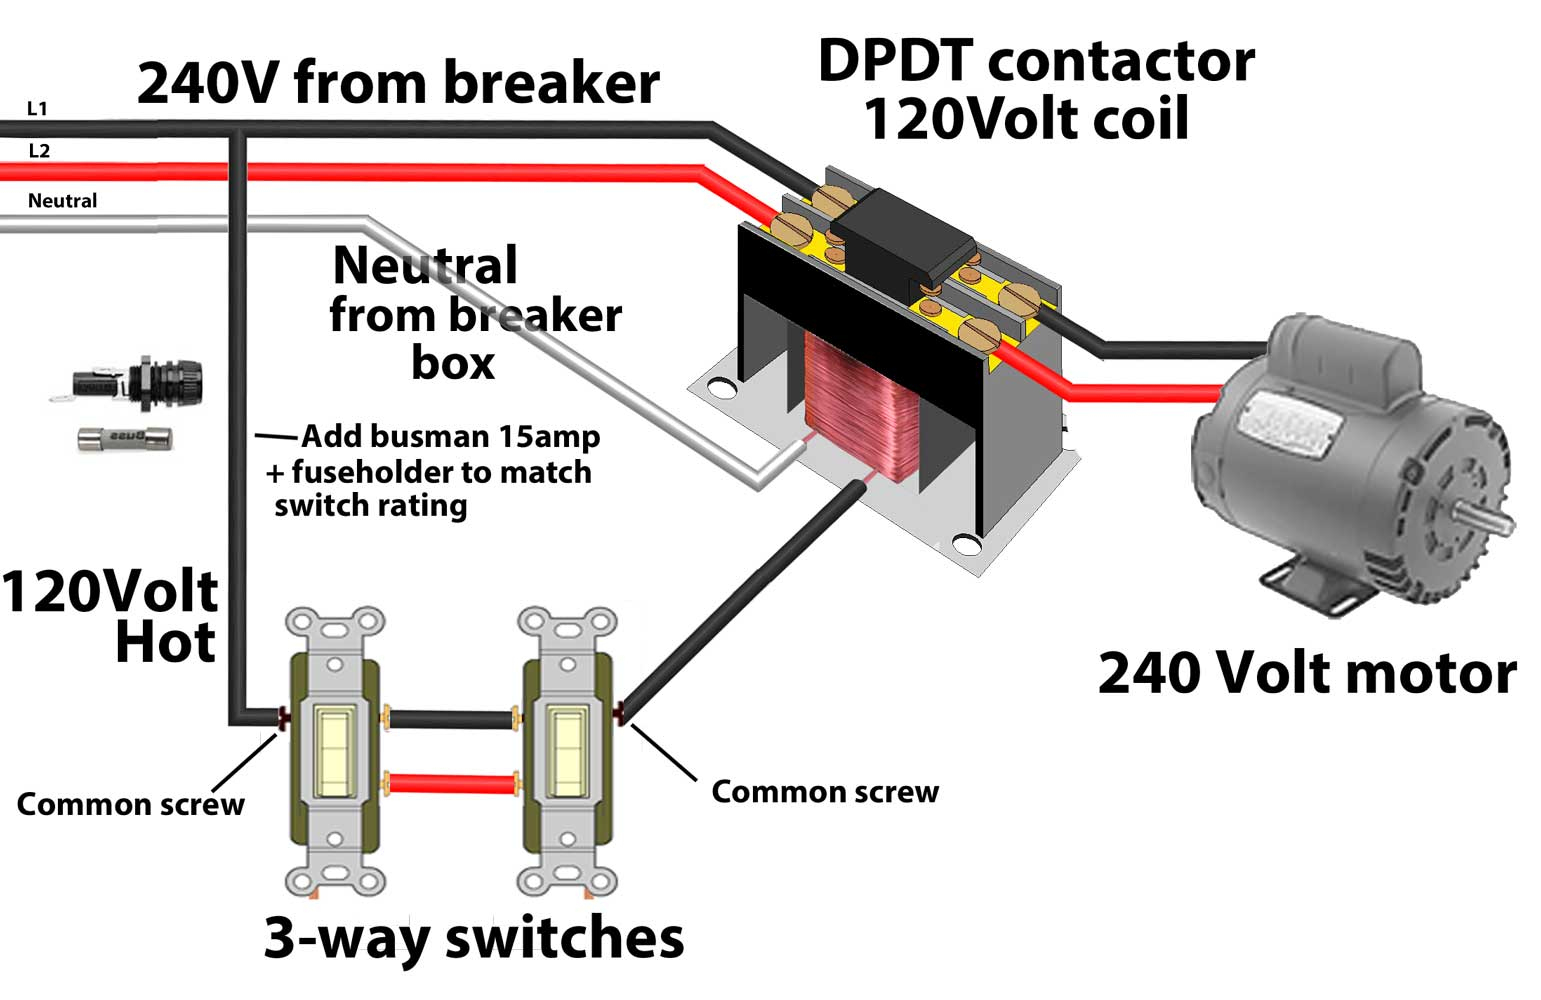 Contactor Wiring Diagram 220 | Better Wiring Diagram Online on